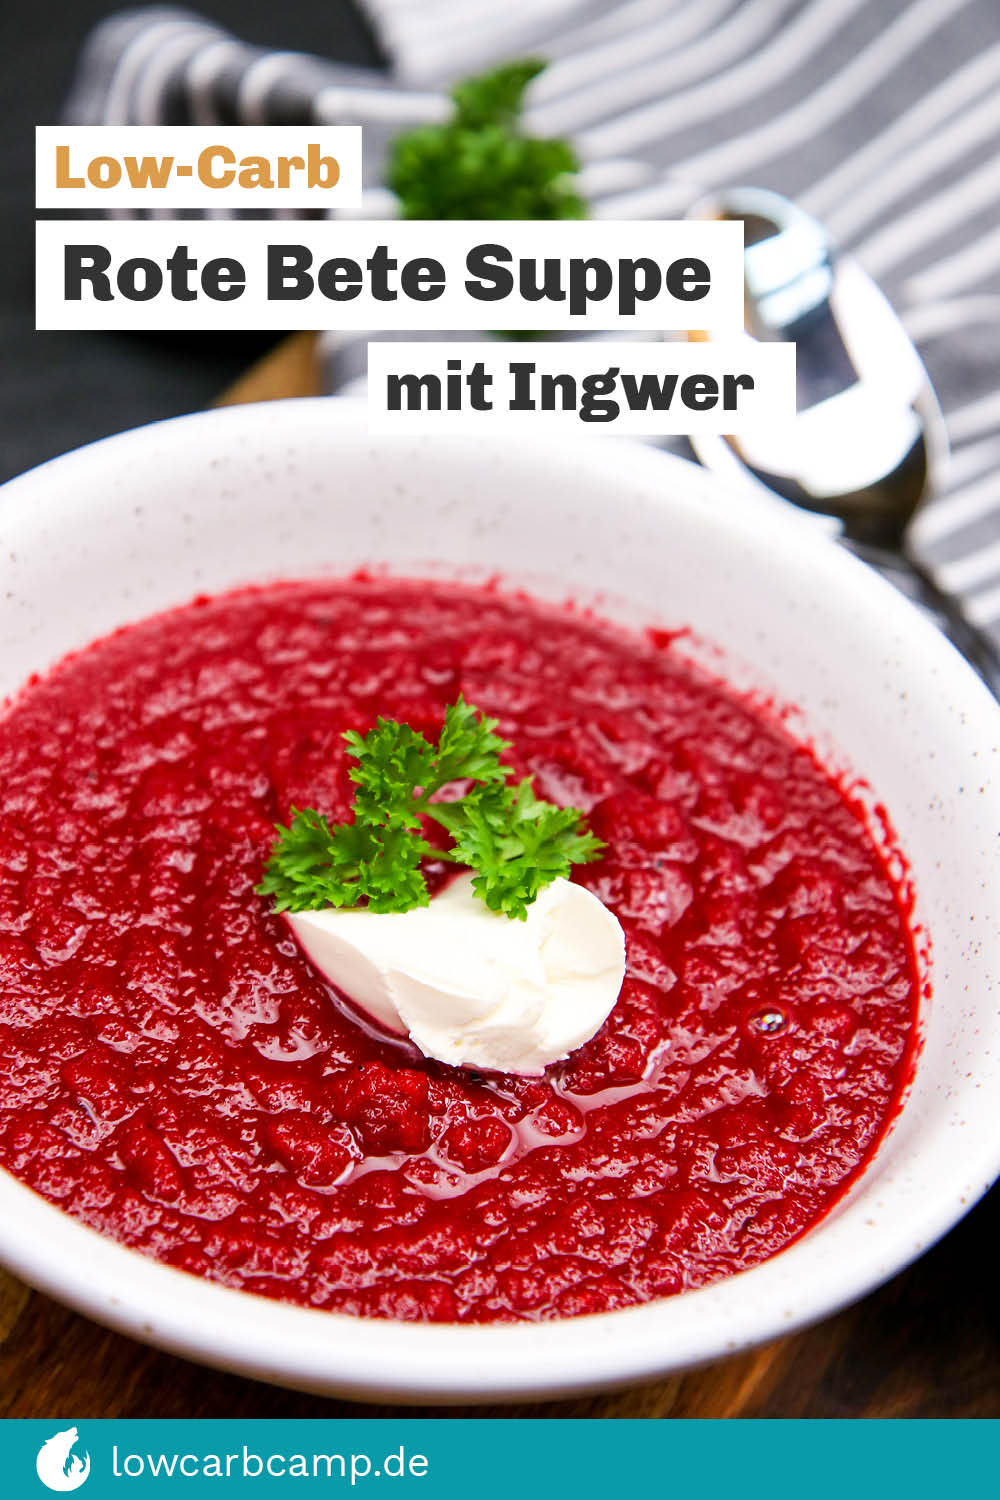 Rote Bete Suppe mit Ingwer